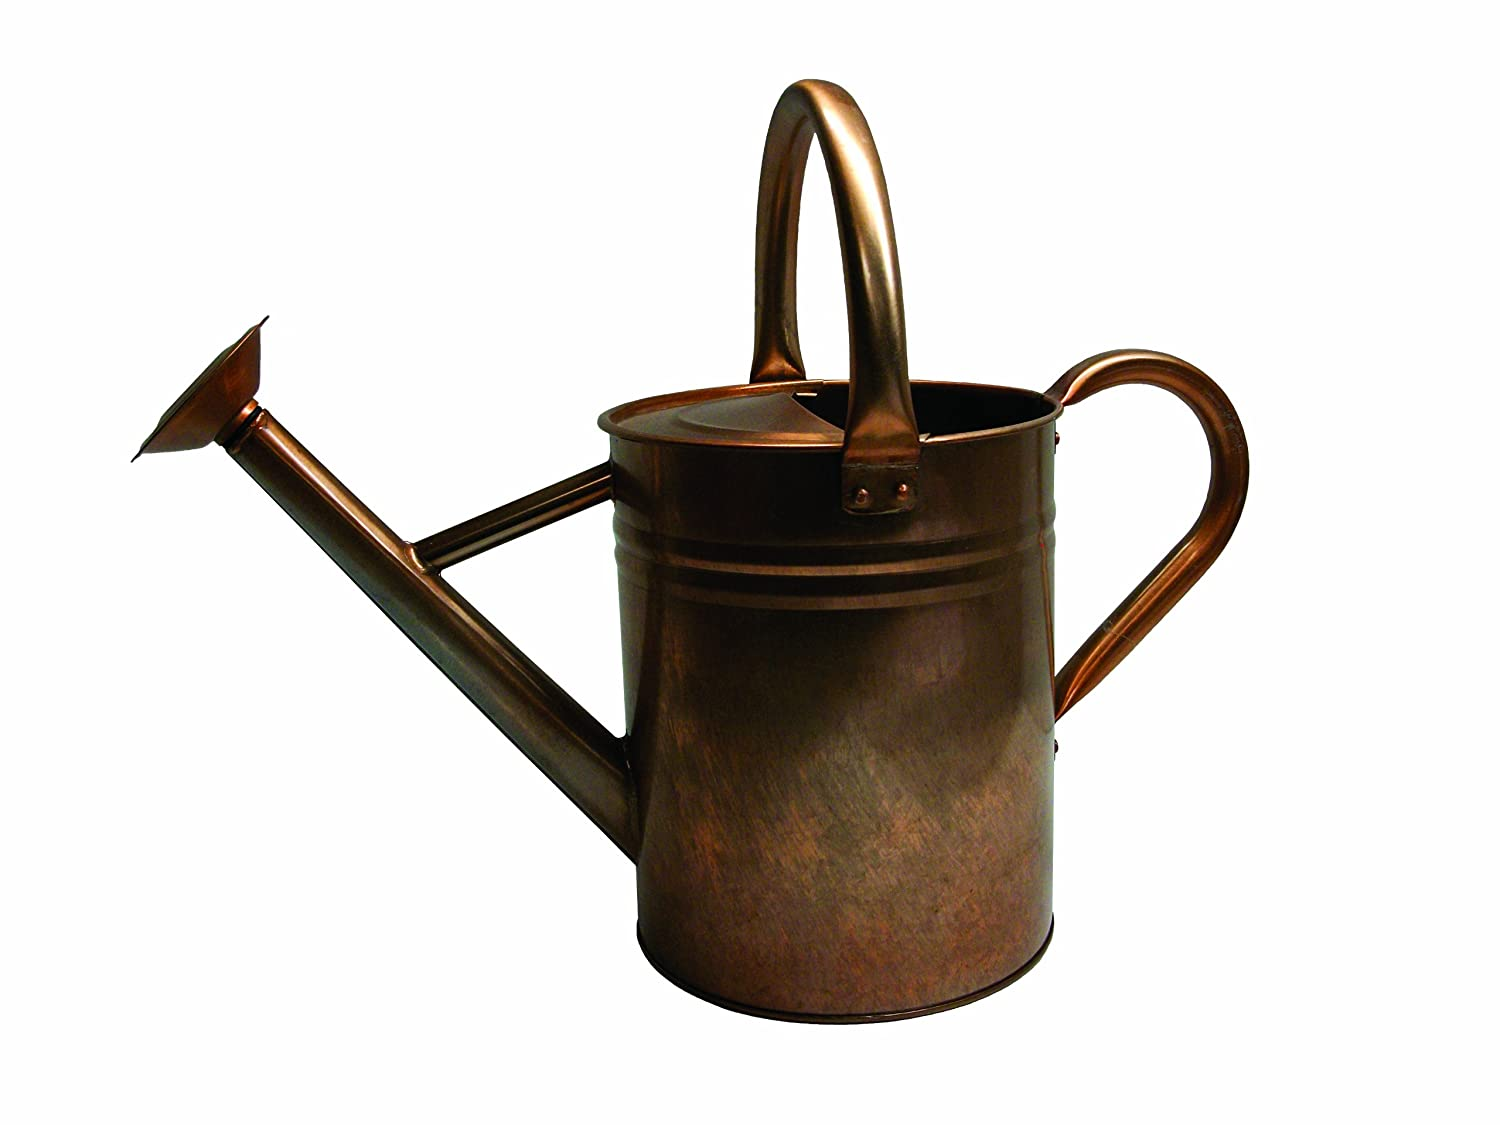 Gardman 8333 Antique Copper Finish Galvanized Steel Watering Can, 1.9-Gallon